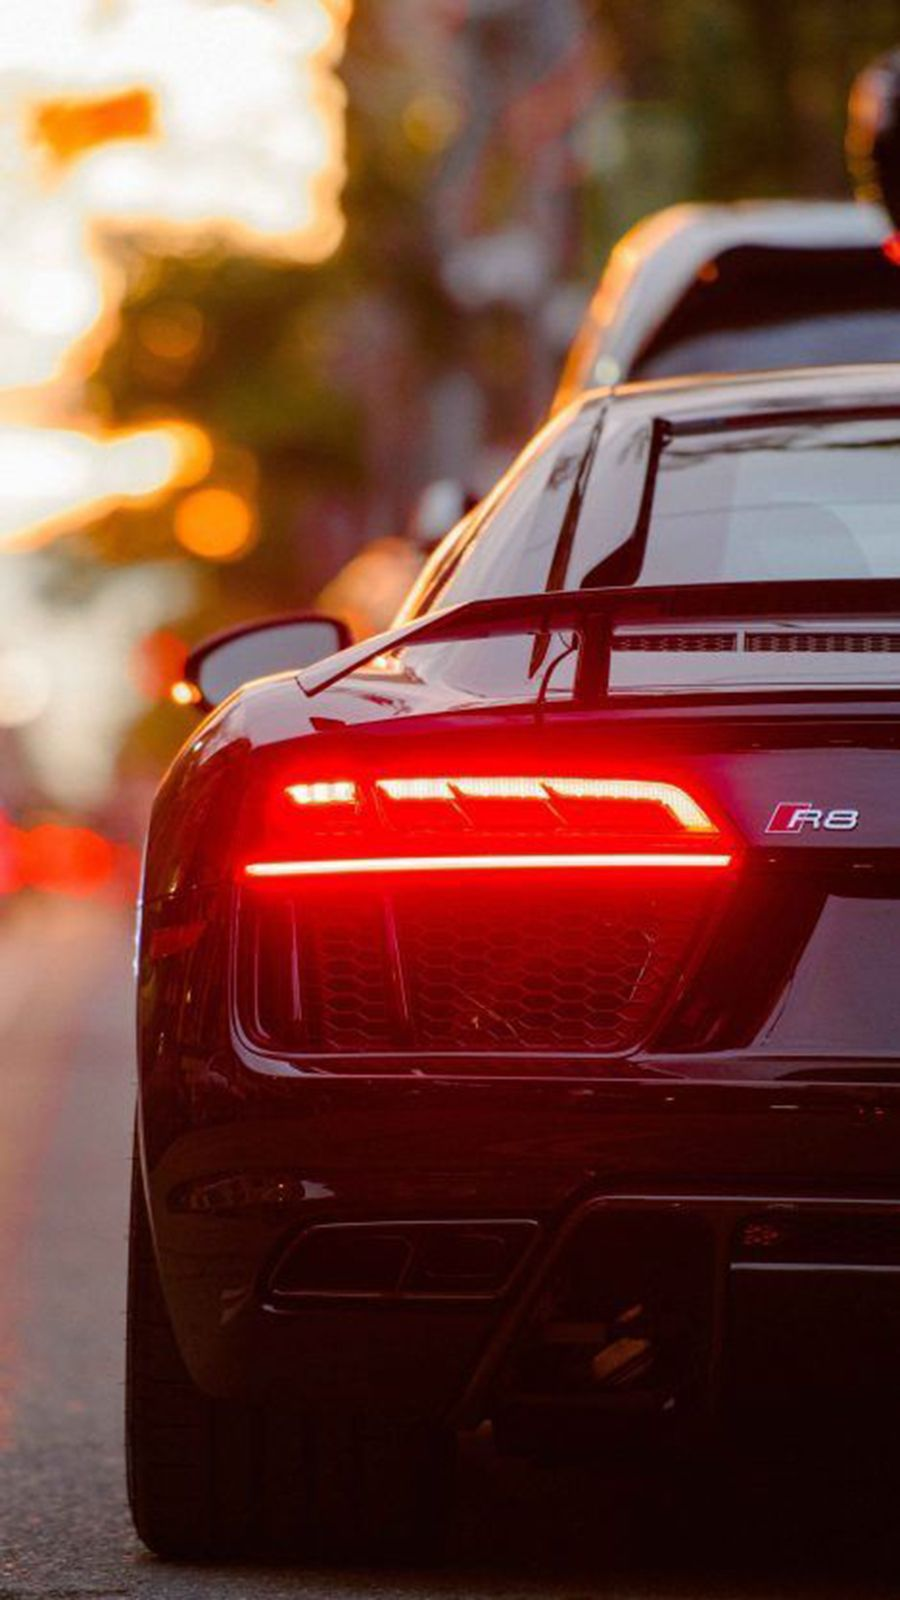 Back View Supercars Hd Wallpapers Free Download In 2020 Audi R8